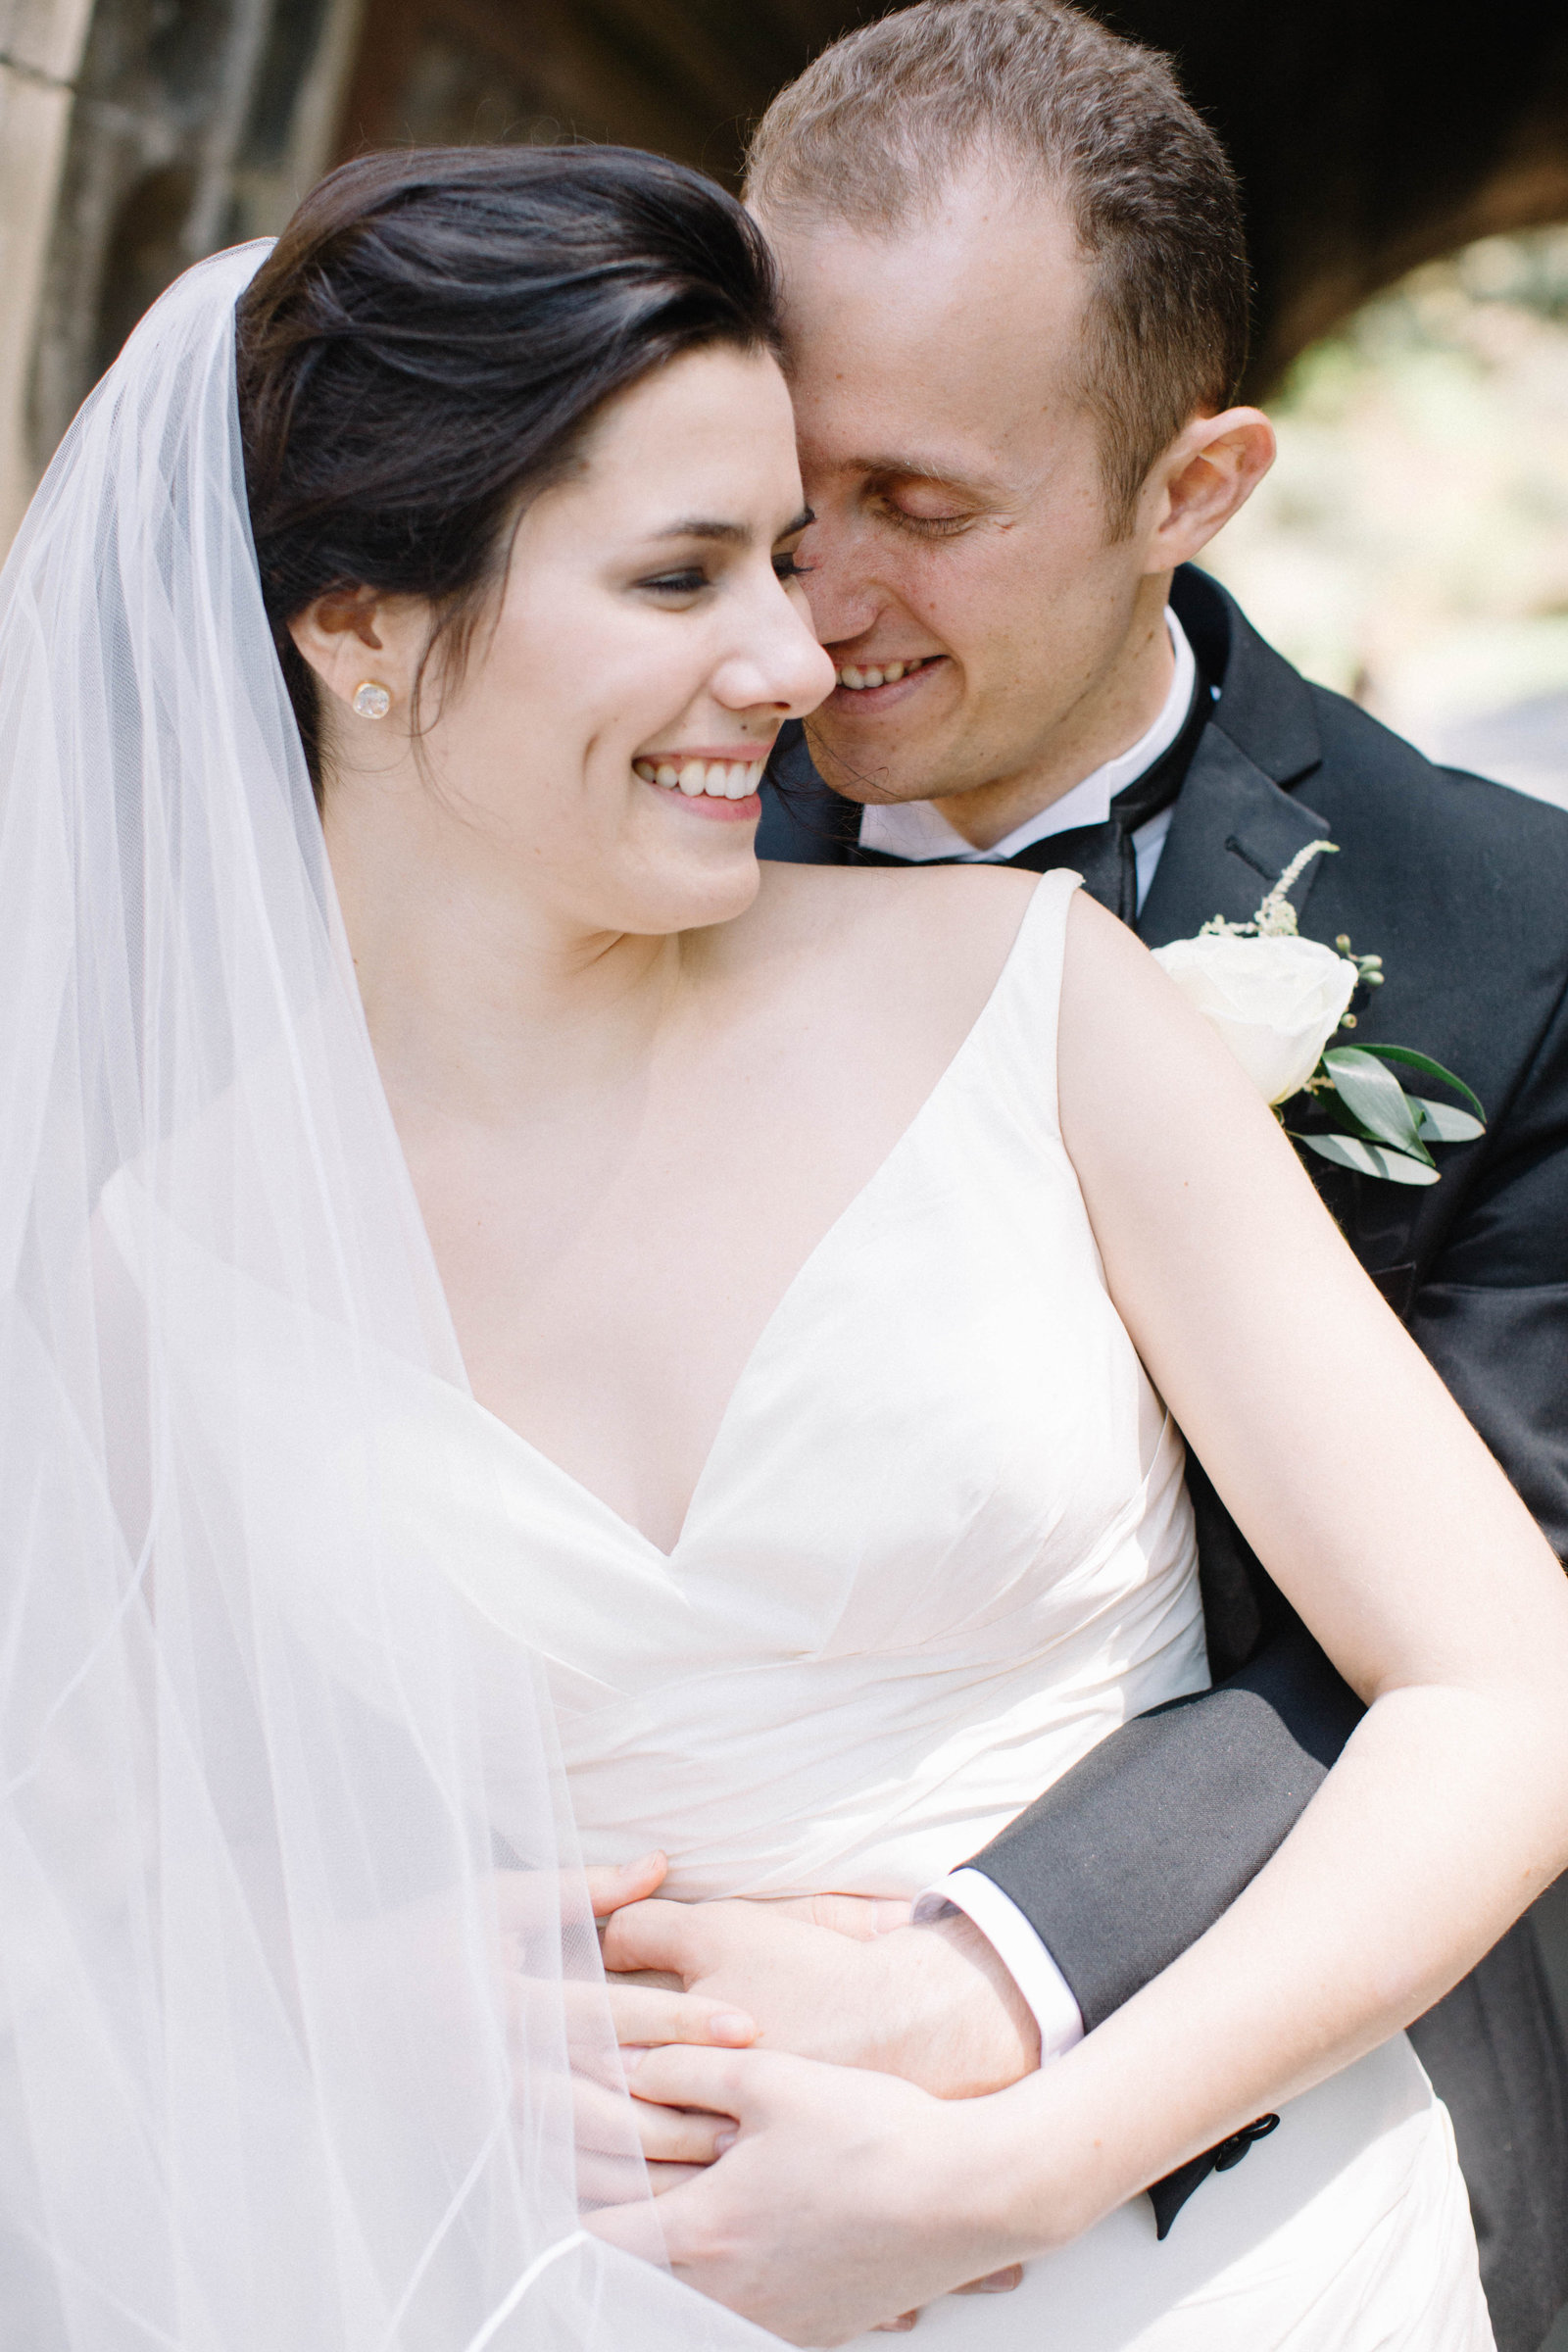 Kauffmann Wedding-Bride Groom Portraits-0113